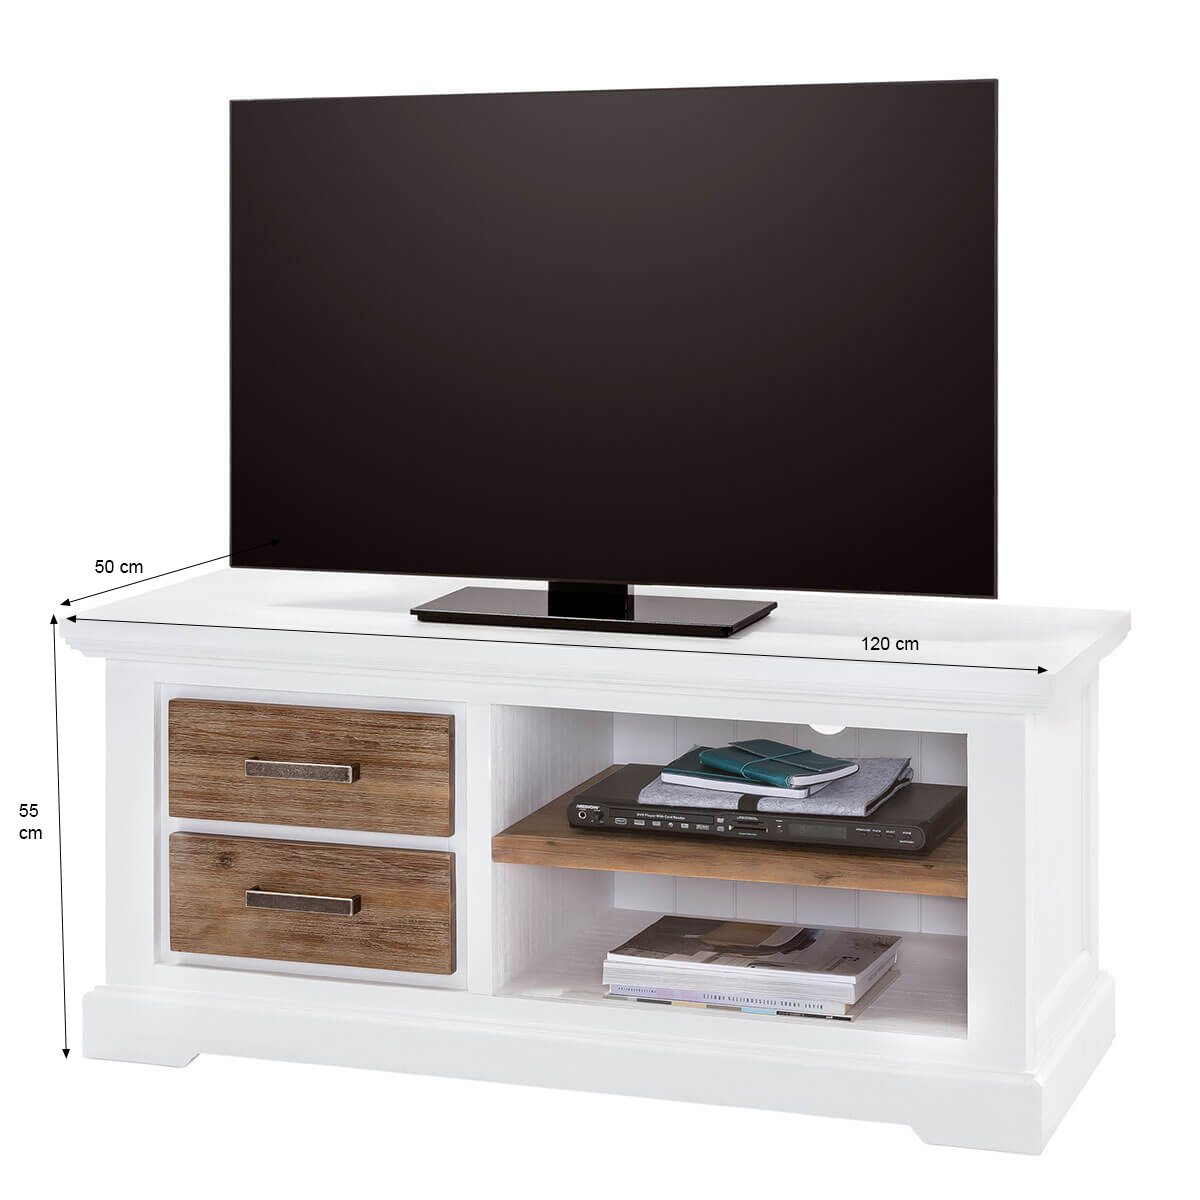 tv lowboard lale in wei braun 120cm breit. Black Bedroom Furniture Sets. Home Design Ideas